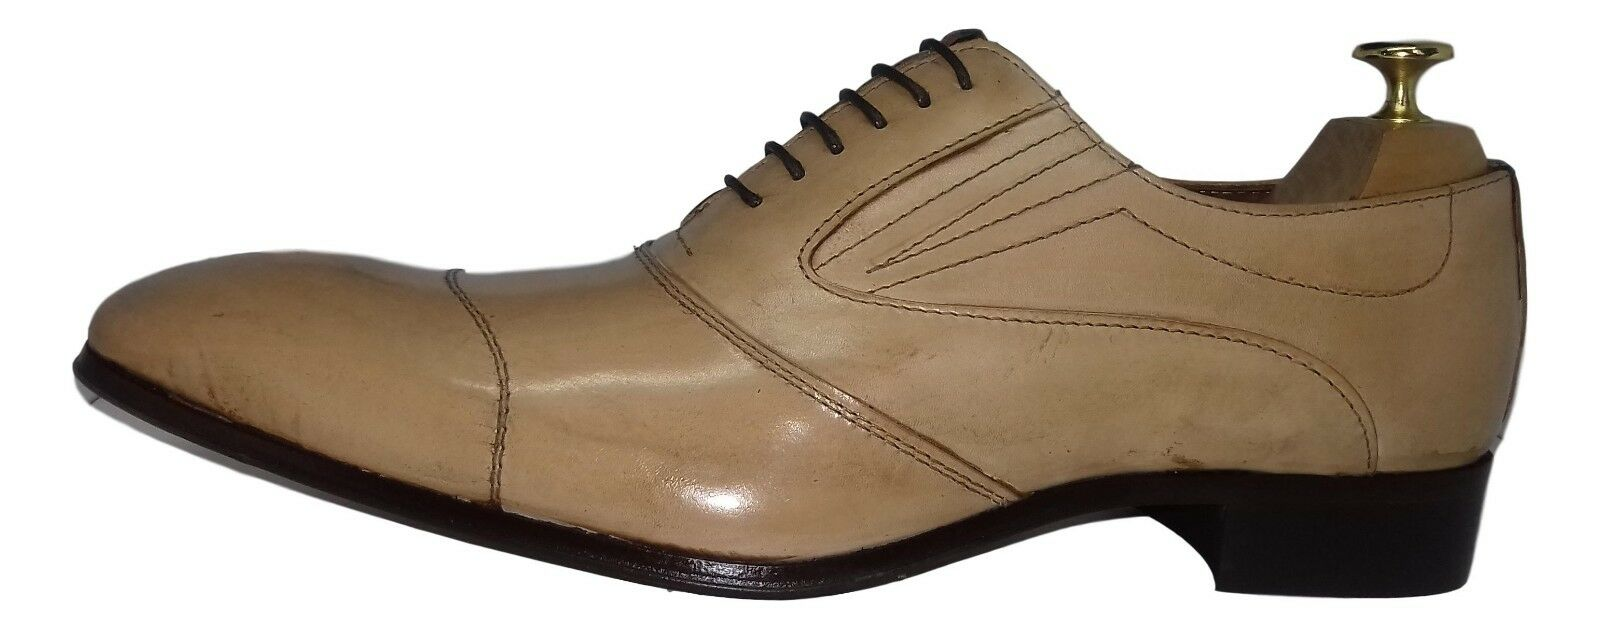 CHAUSSURE ITALIENNE LUXE HOMME NEUF CUIR BEIGE